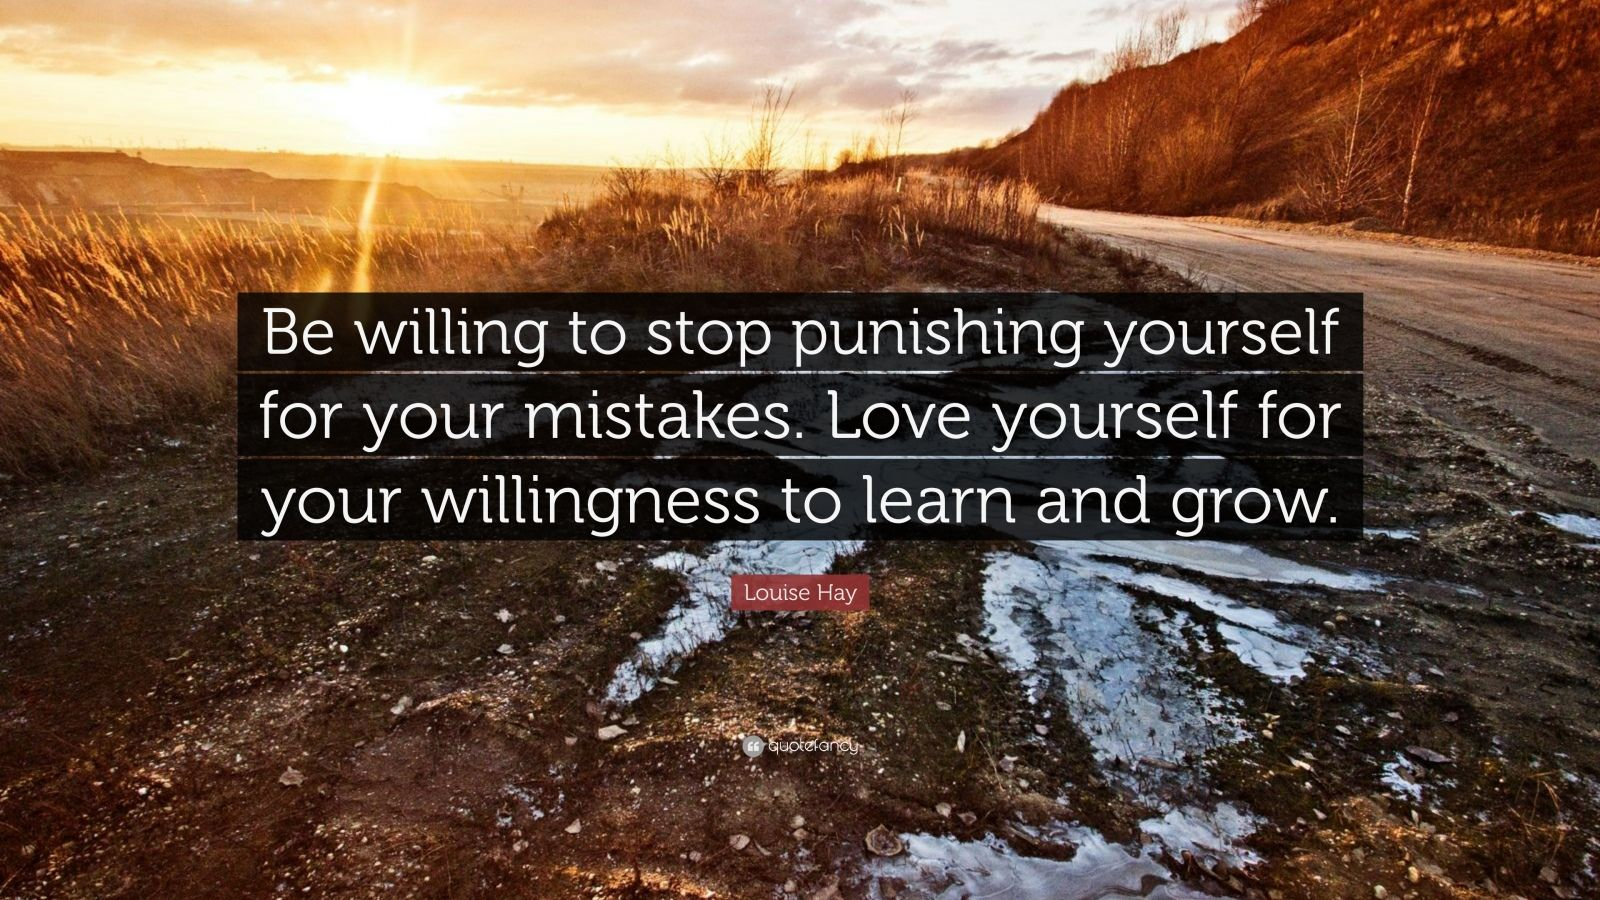 """Louise Hay Quote: """"Be willing to stop punishing yourself for your mistakes. Love yourself for your willingness to learn and grow."""""""